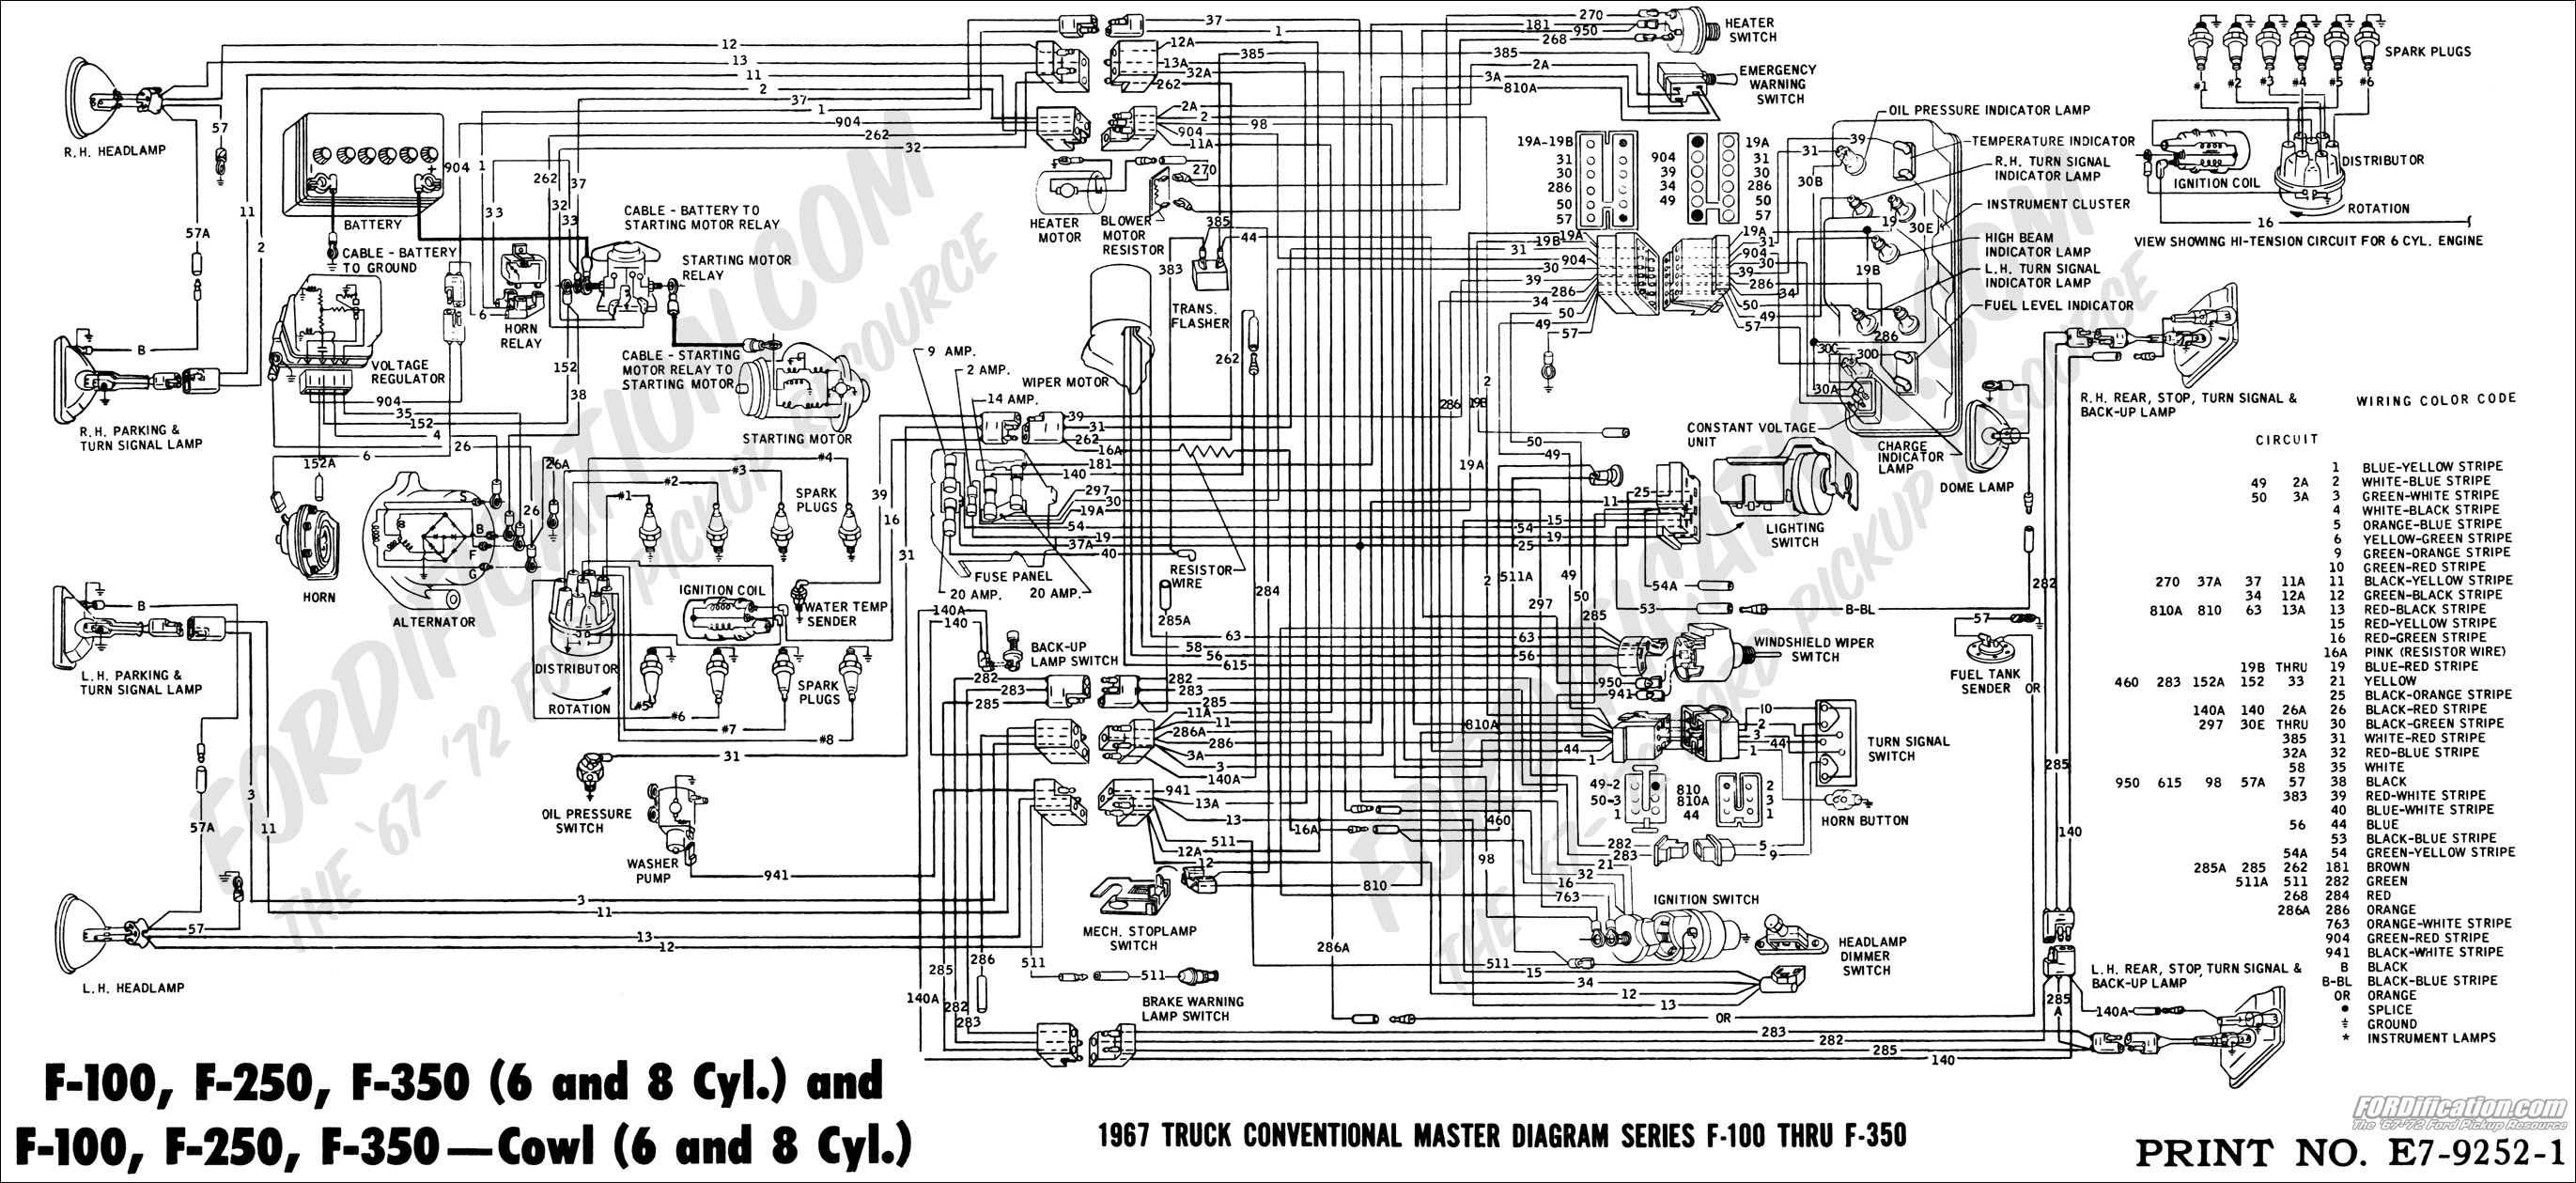 89 ford f150 wiring diagram detailed schematics diagram rh keyplusrubber  com 1988 f150 wiring diagram 1988 f150 wiring harness diagram